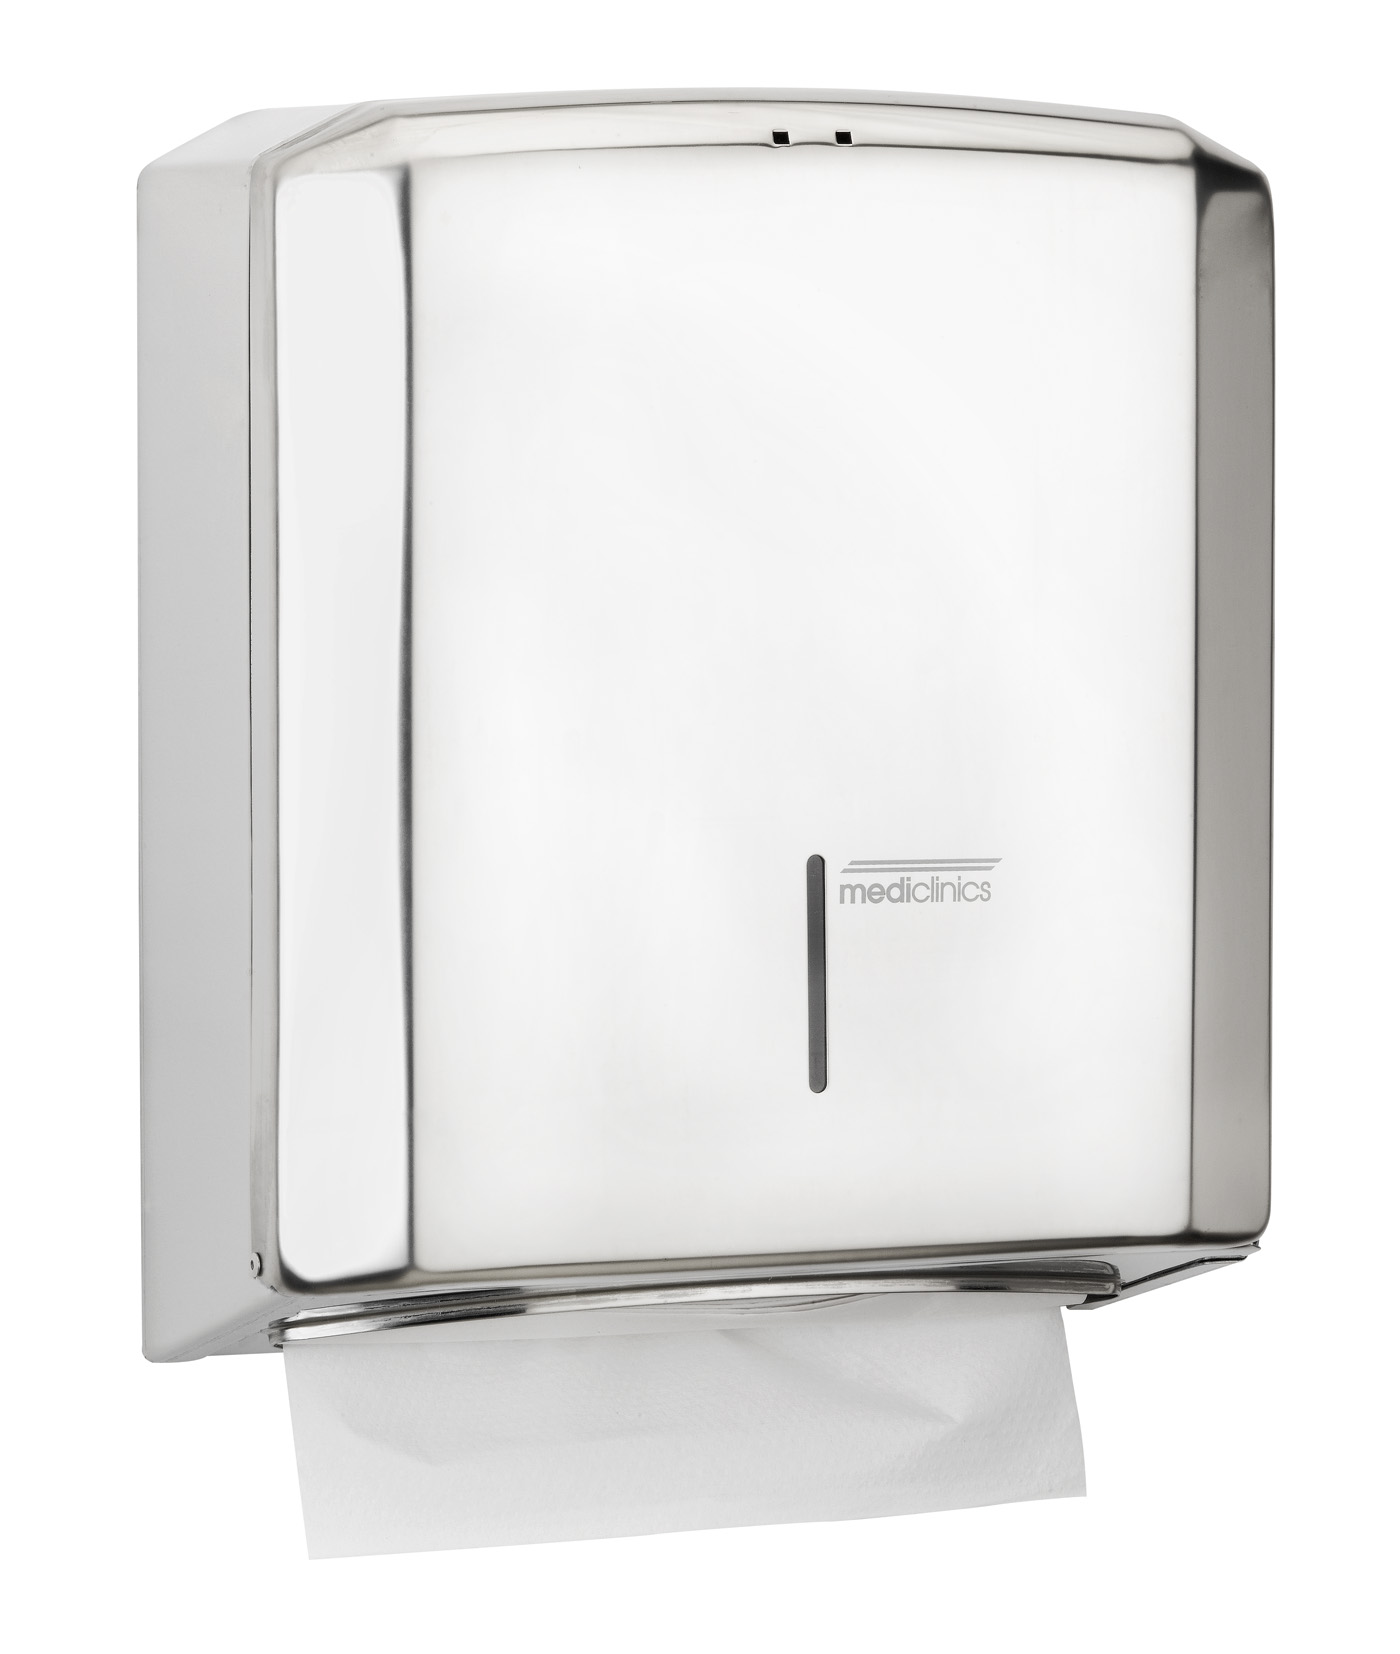 Paper Towel Dispenser Stainless Bright Mediclinics